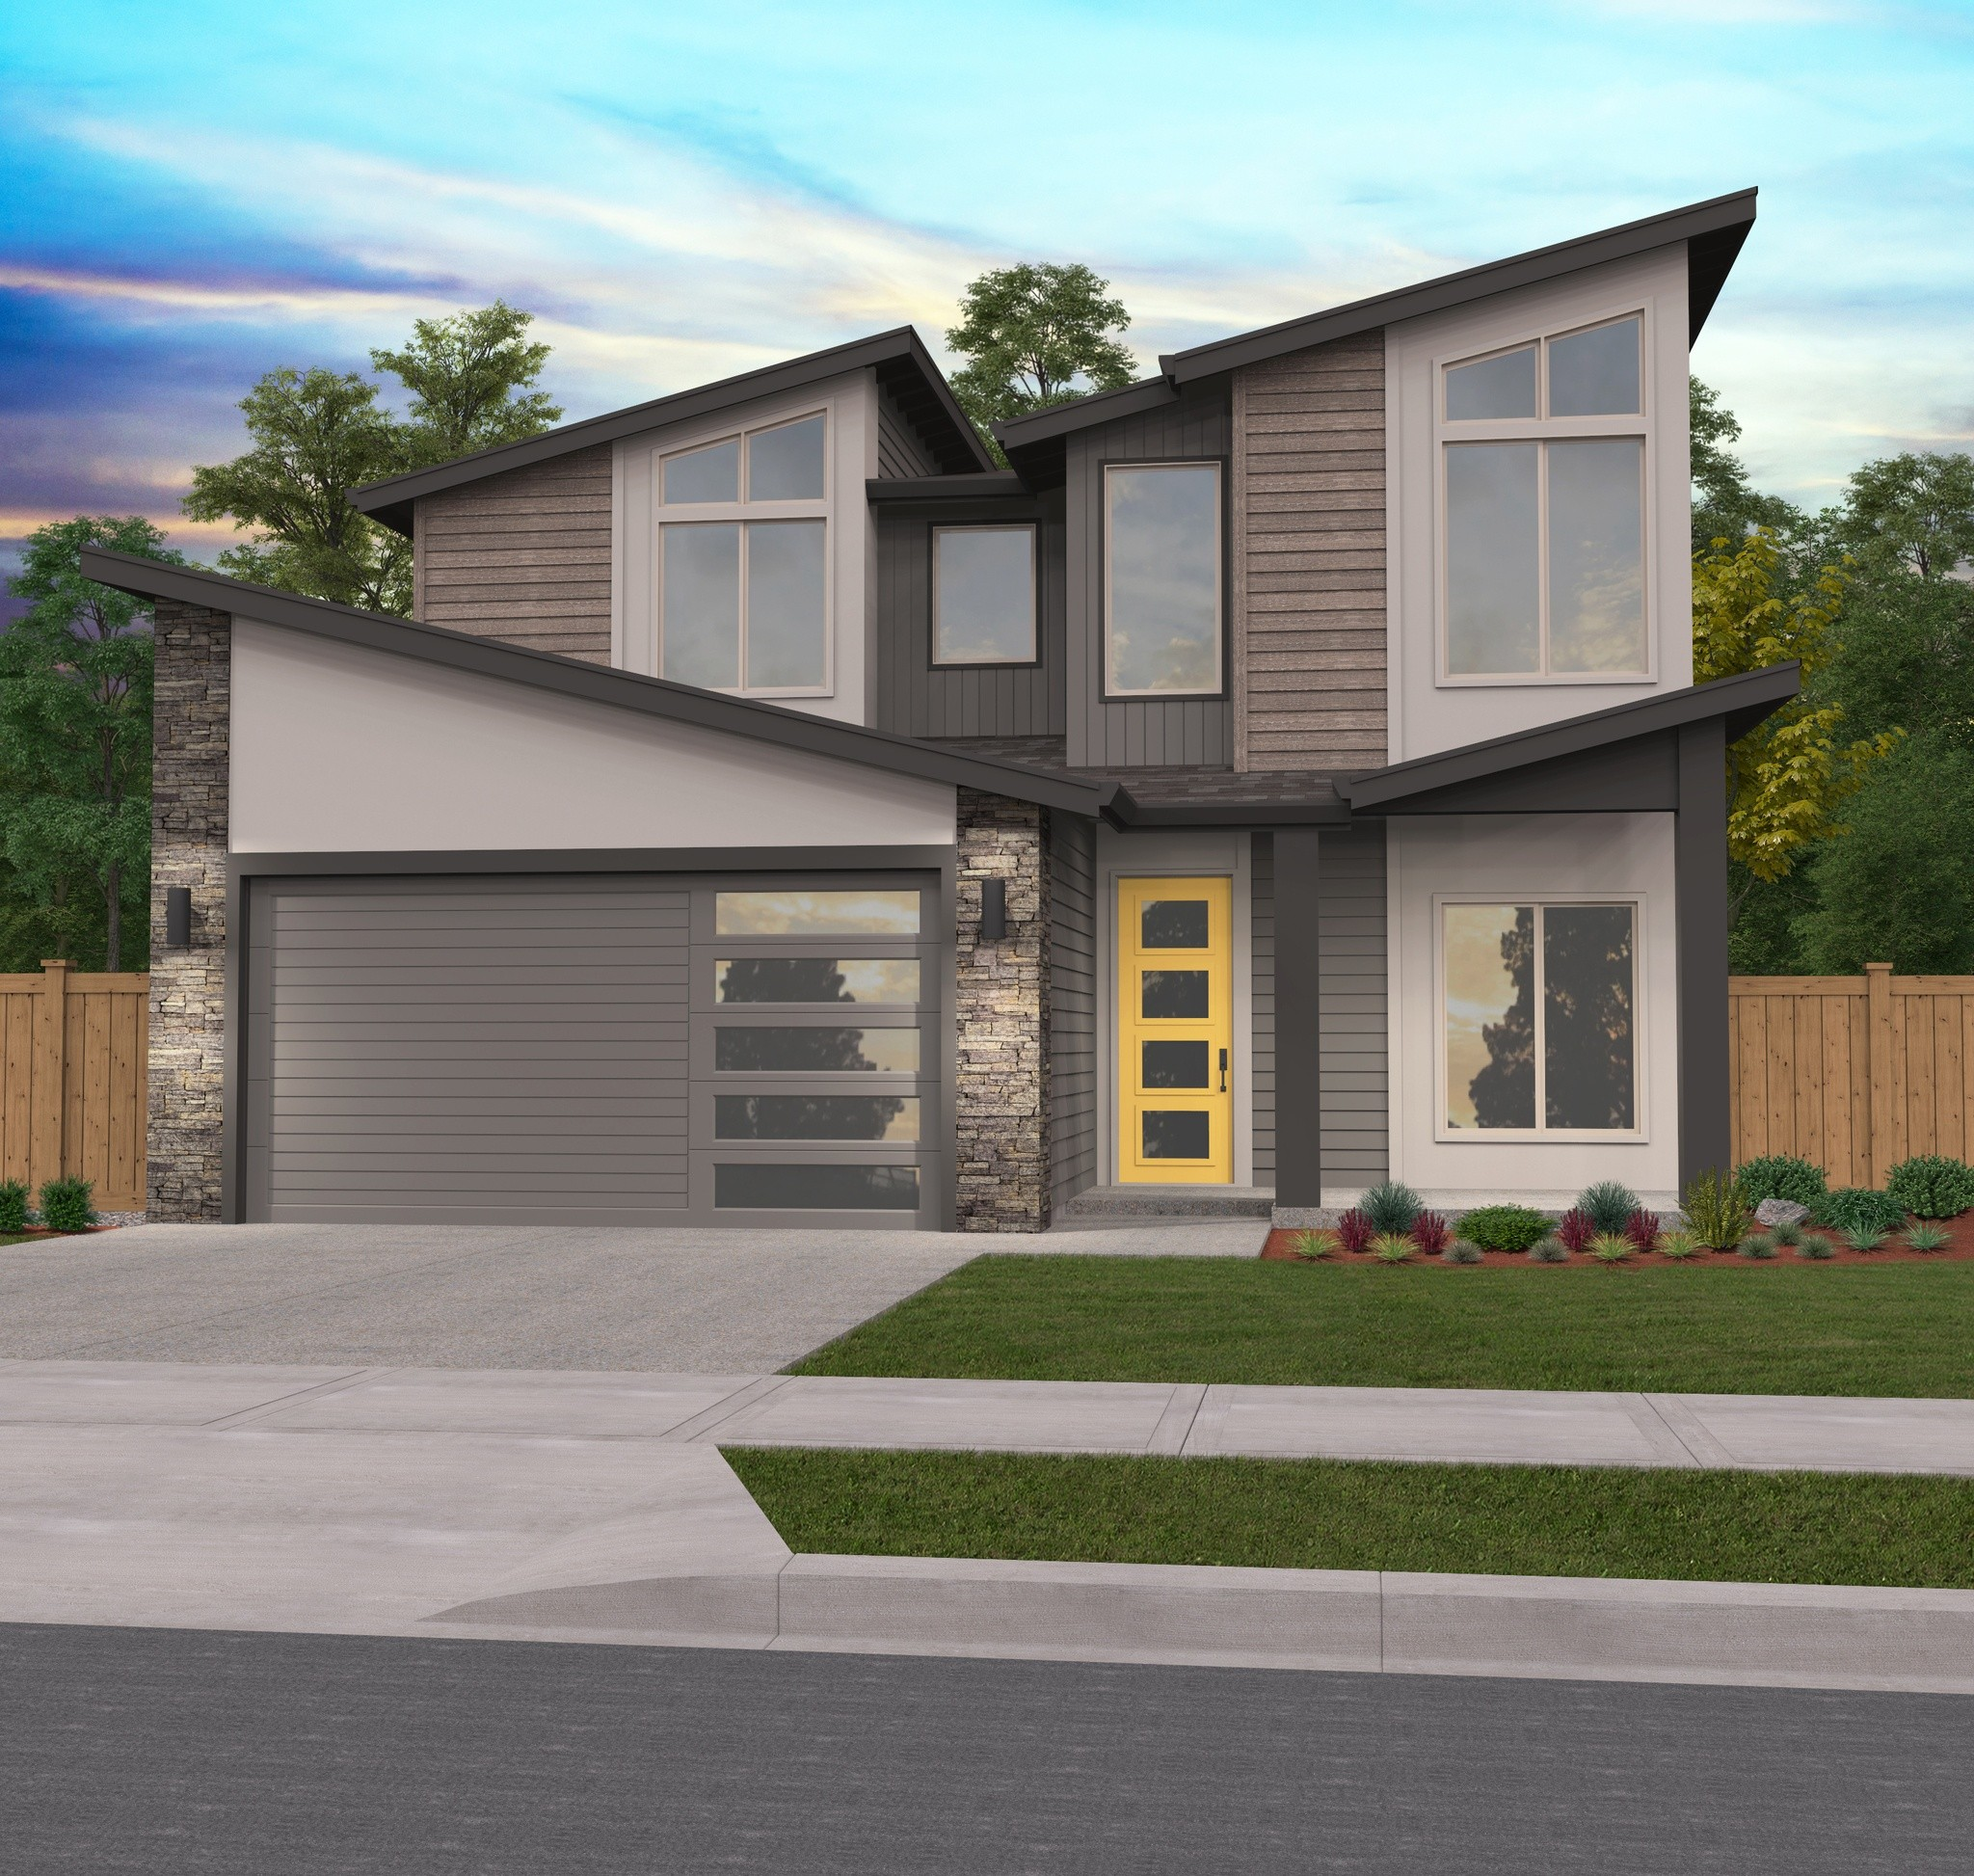 House Design: Two Story Modern House Plans With